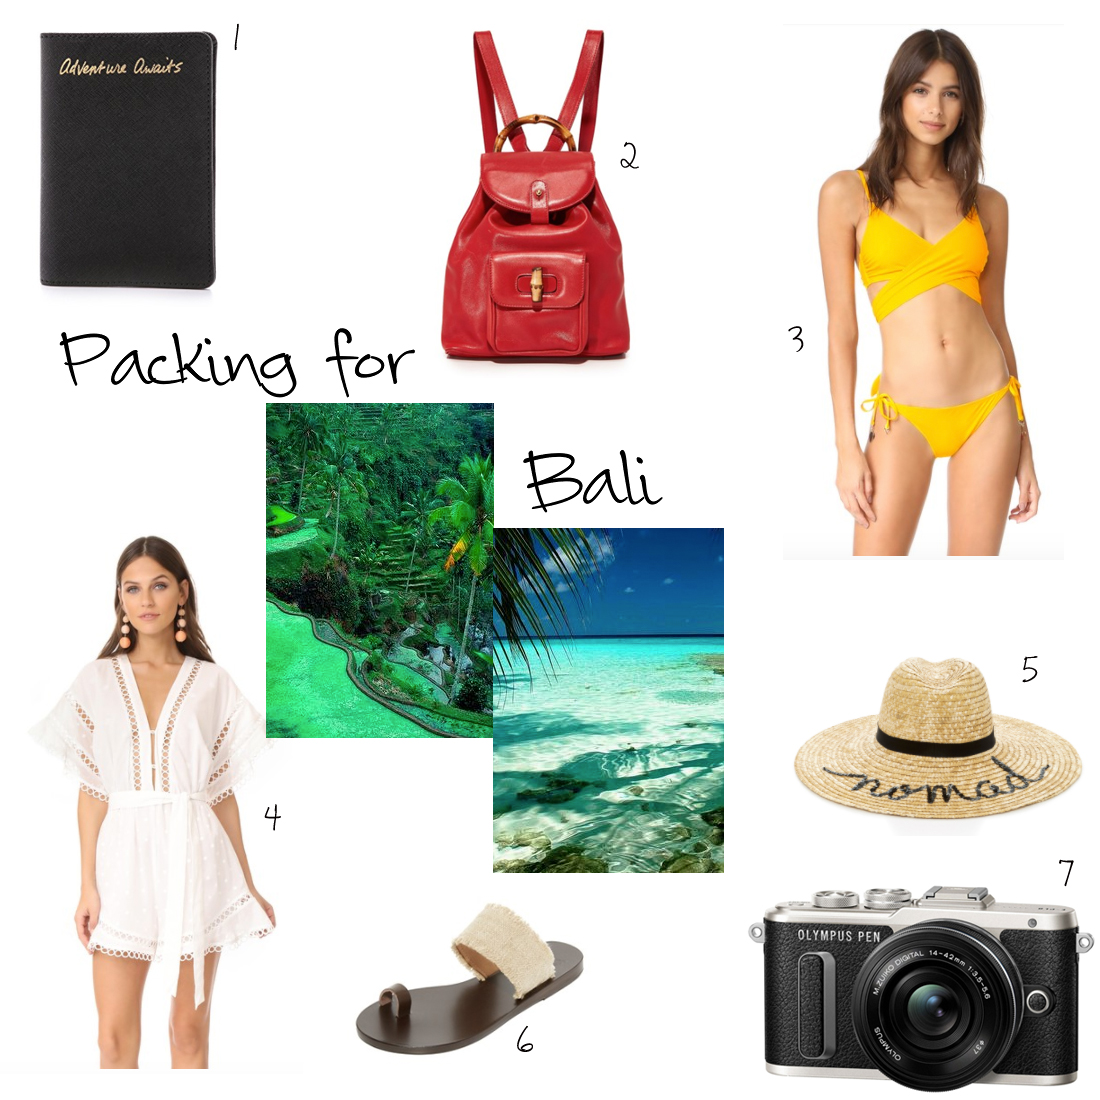 Packing for … Bali